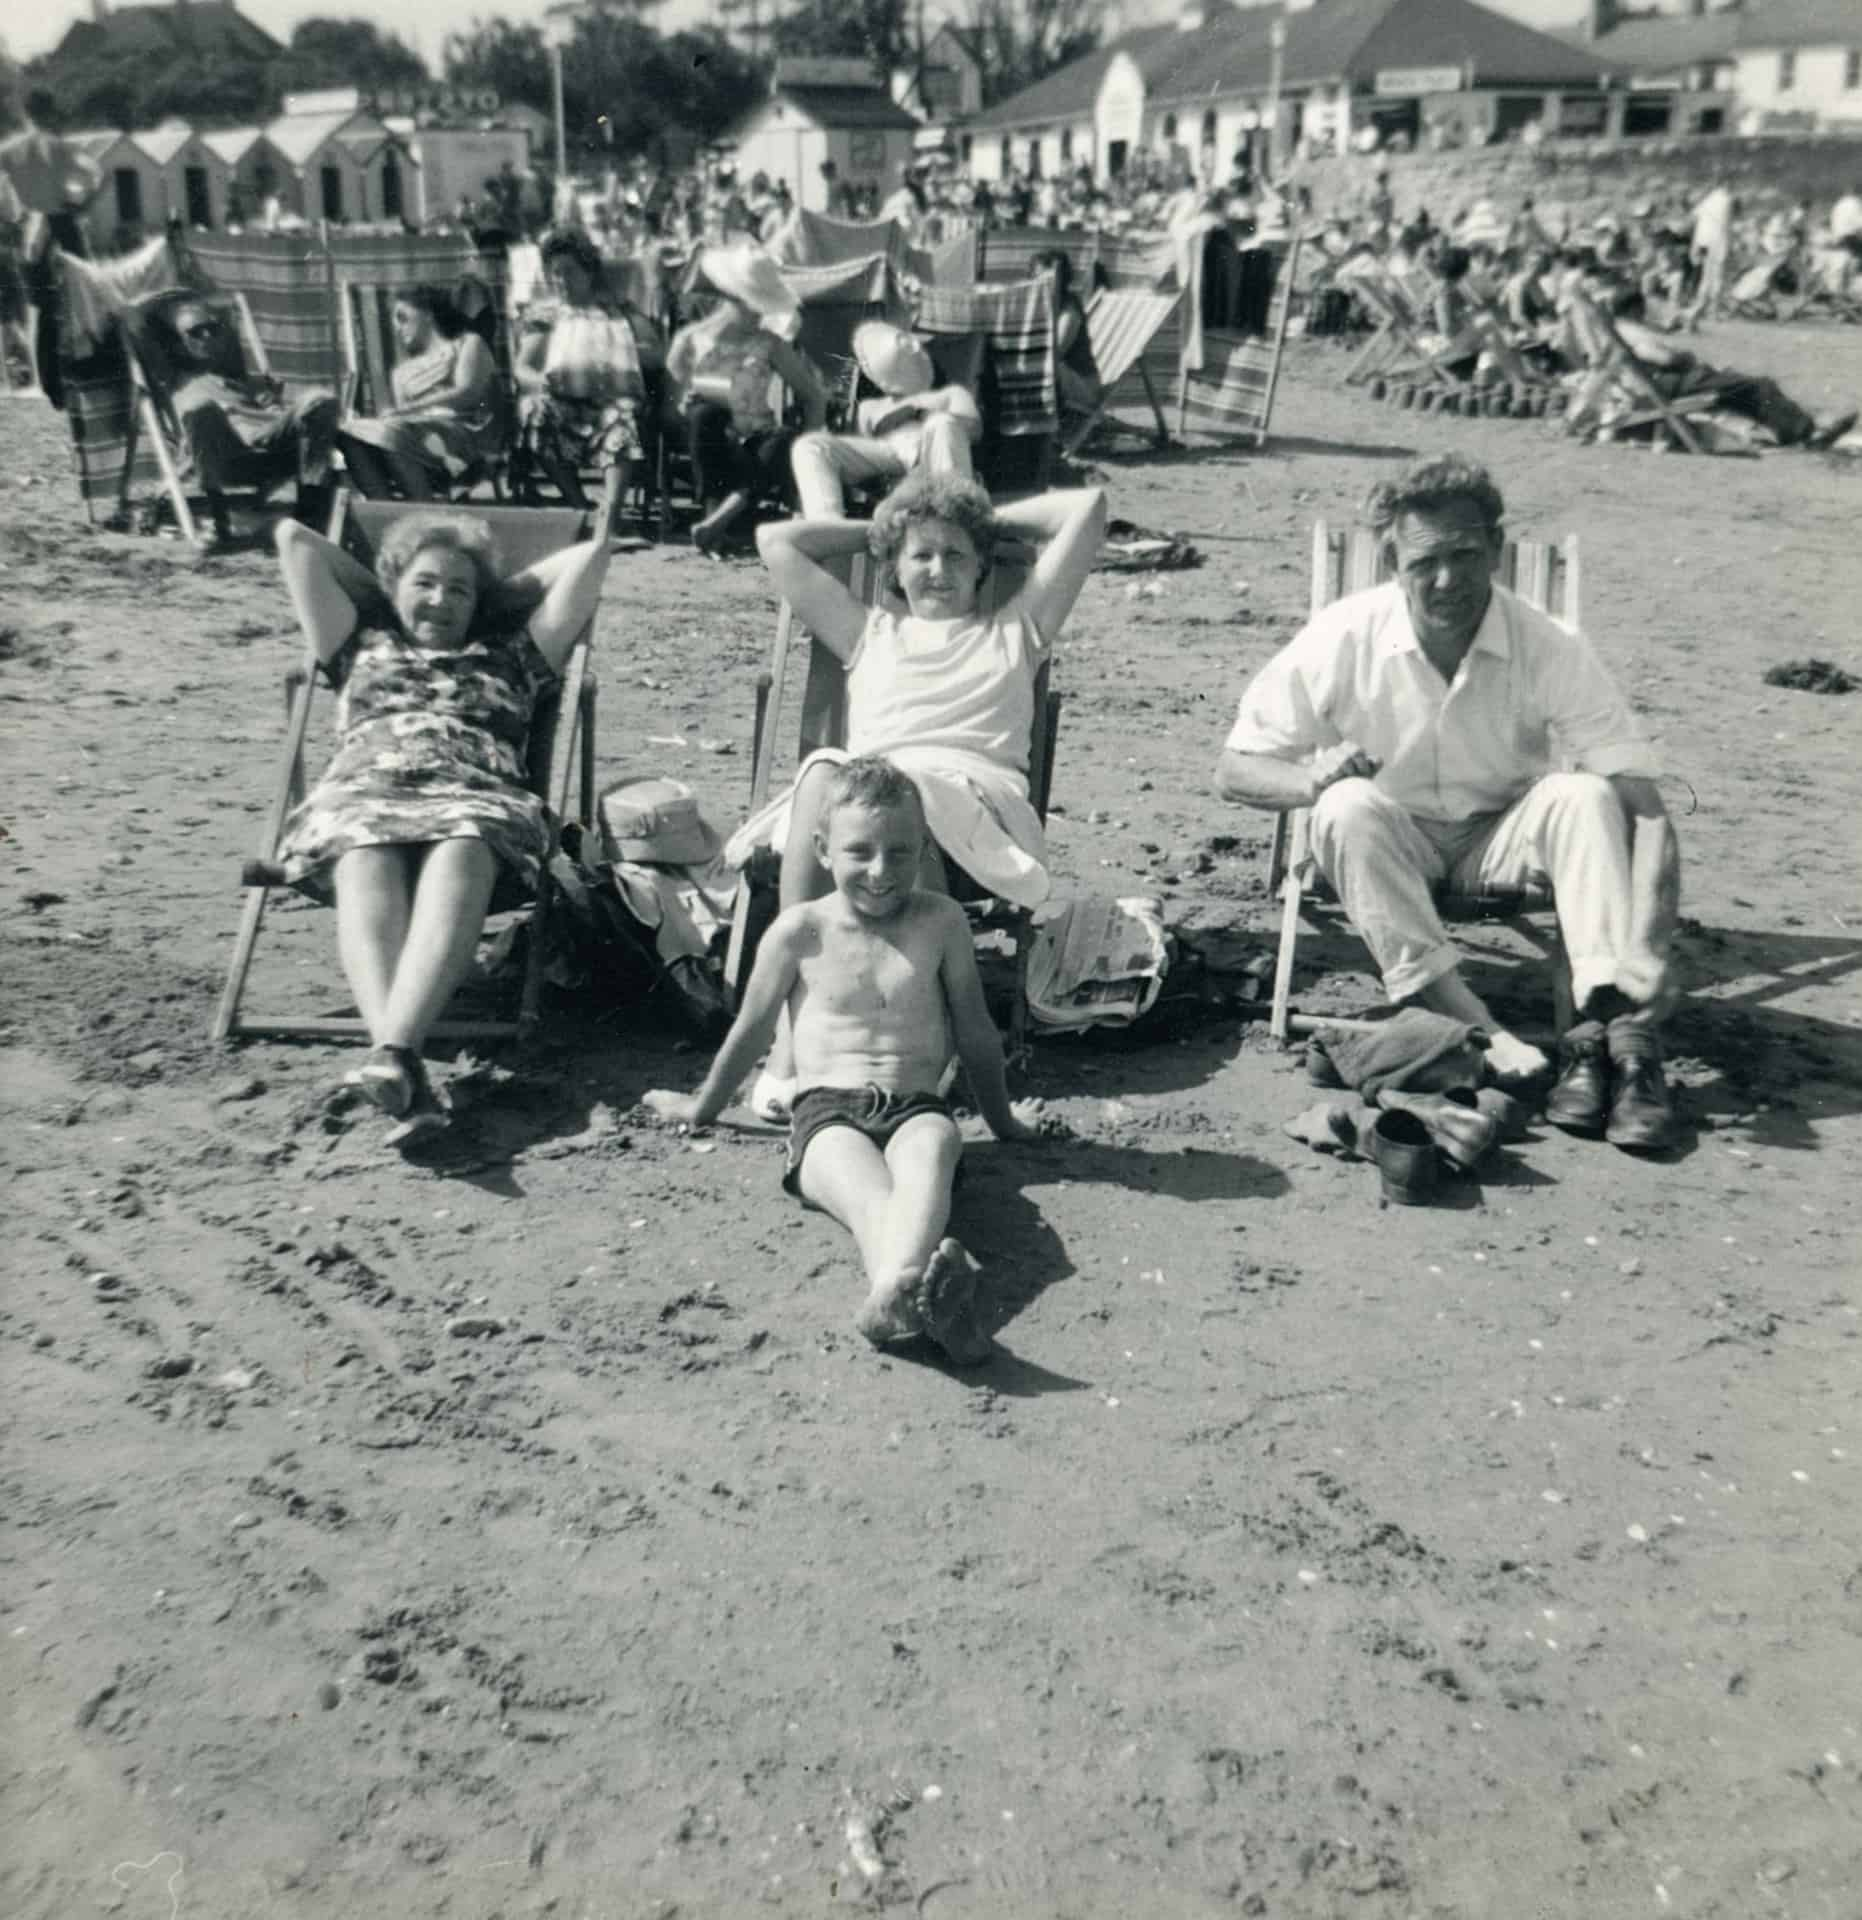 Nan, Mom and Dad in deckchairs and my mate Derek in the foreground on the beach in the 1960s